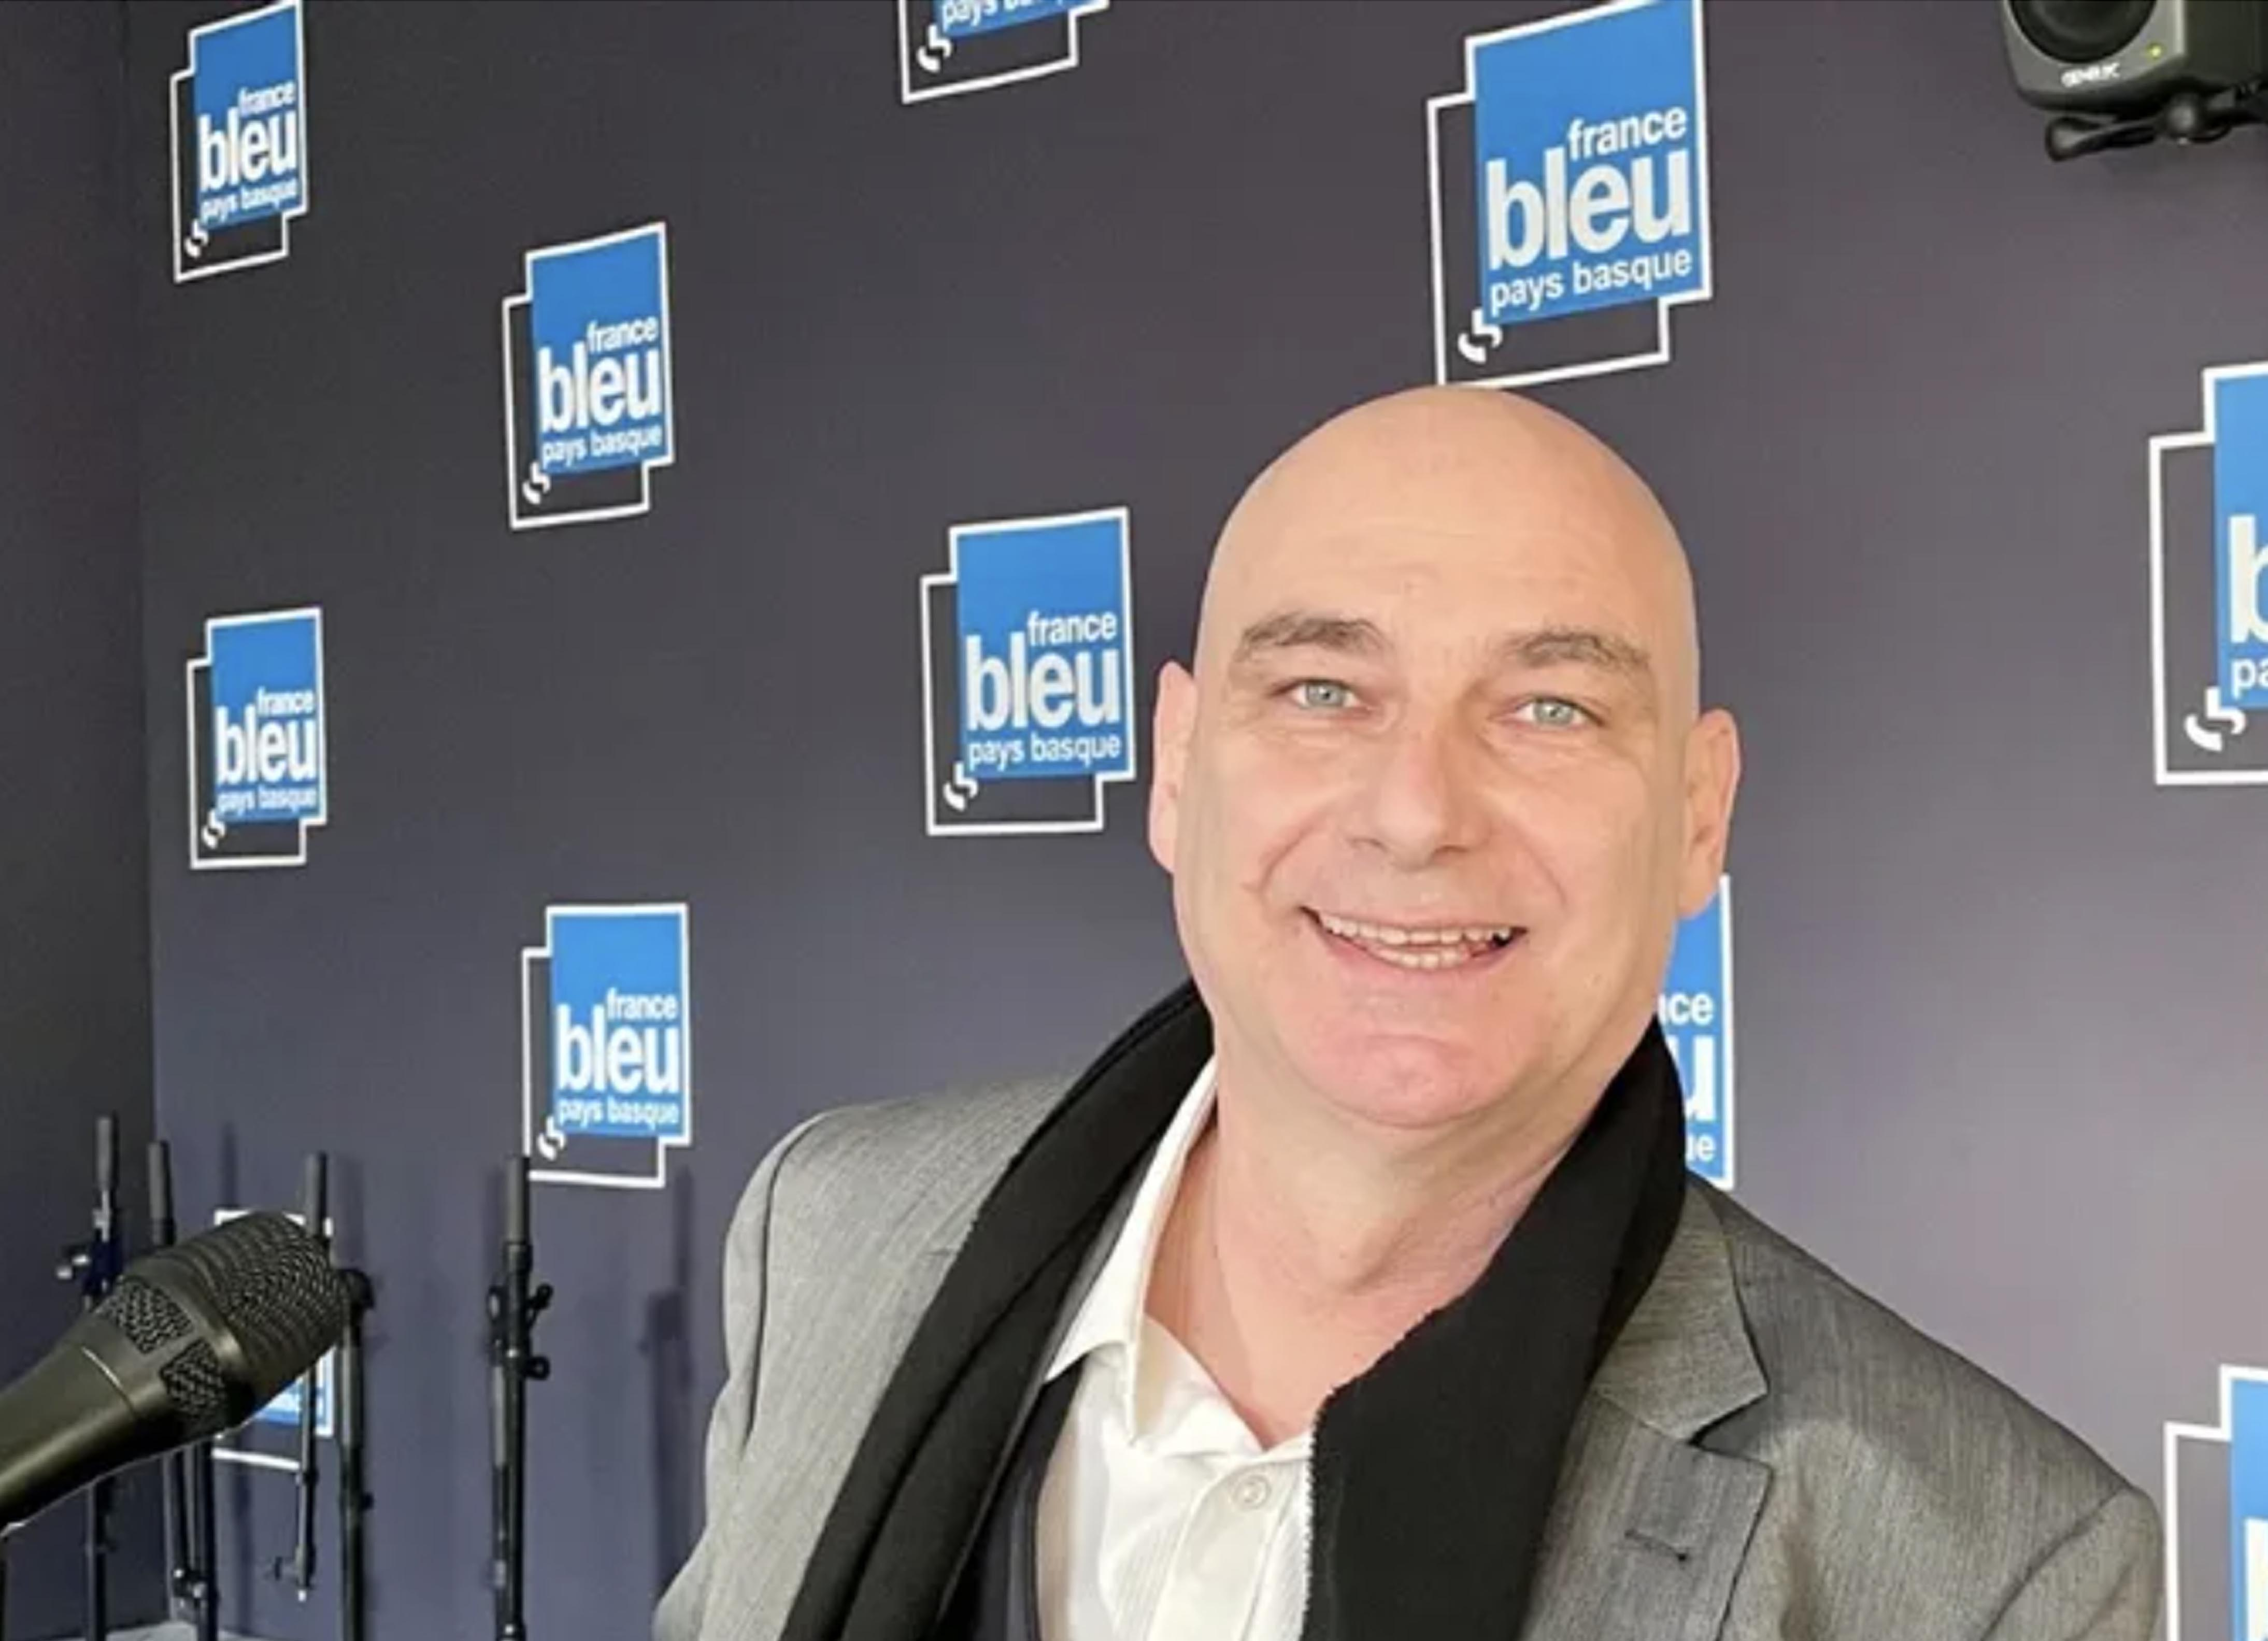 interview-france-bleu-jean-paul